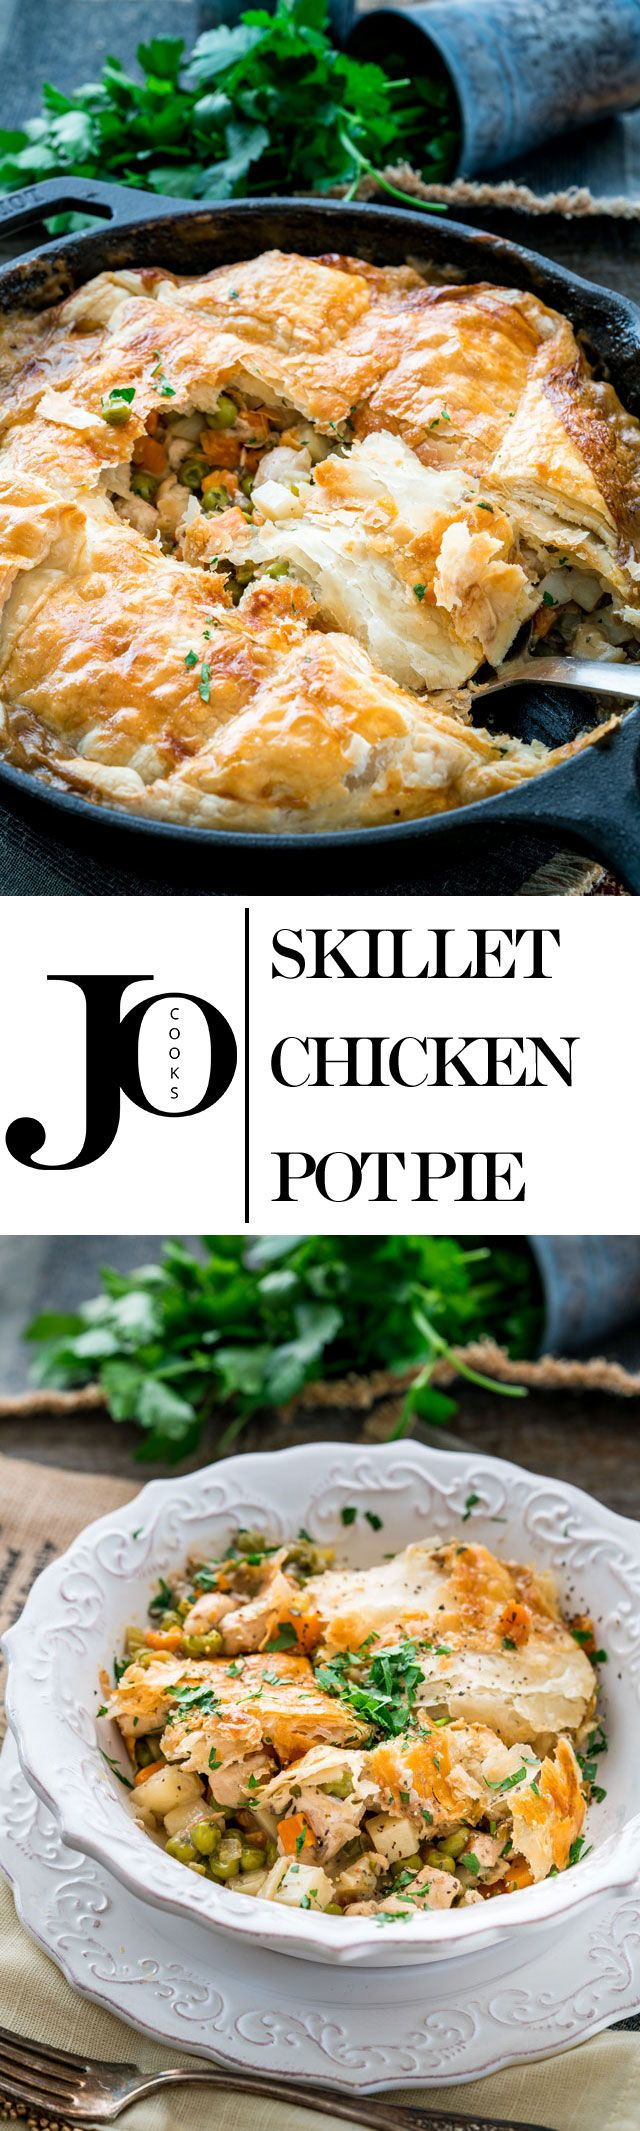 This skillet chicken pot pie is the ultimate comfort food perfect for cold winter nights with a golden pastry crust and loaded with creamy chicken and veggies.